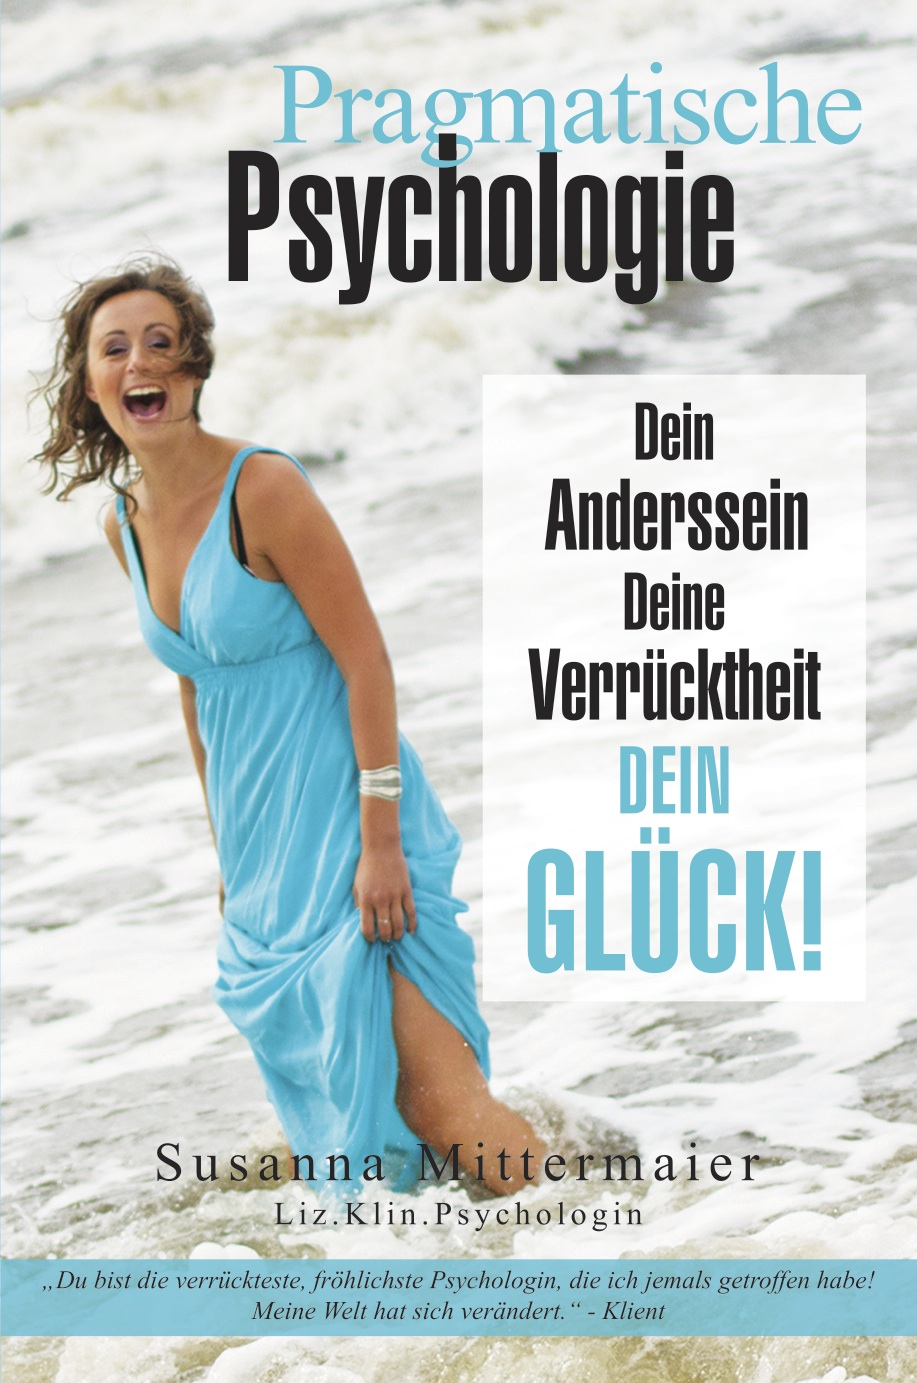 Pragmatische Psychologie (Pragmatic Psychology - German Version)